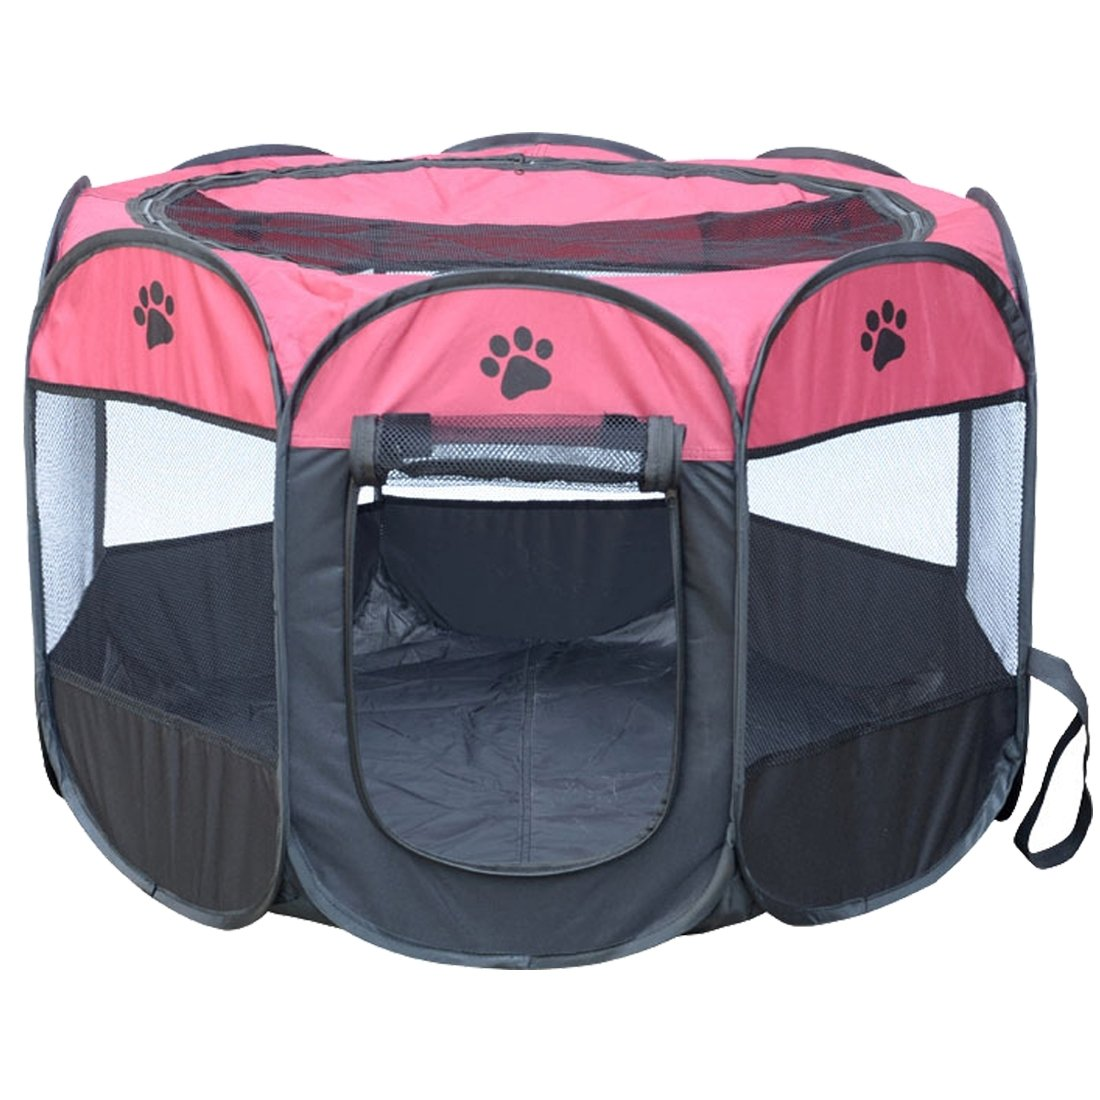 Magenta Yajie-pet, Fashion Oxford Cloth Waterproof Dog Tent Foldable Octagonal Outdoor Pet Fence, M, Size  91 x 91 x 58cm ( color   Magenta )